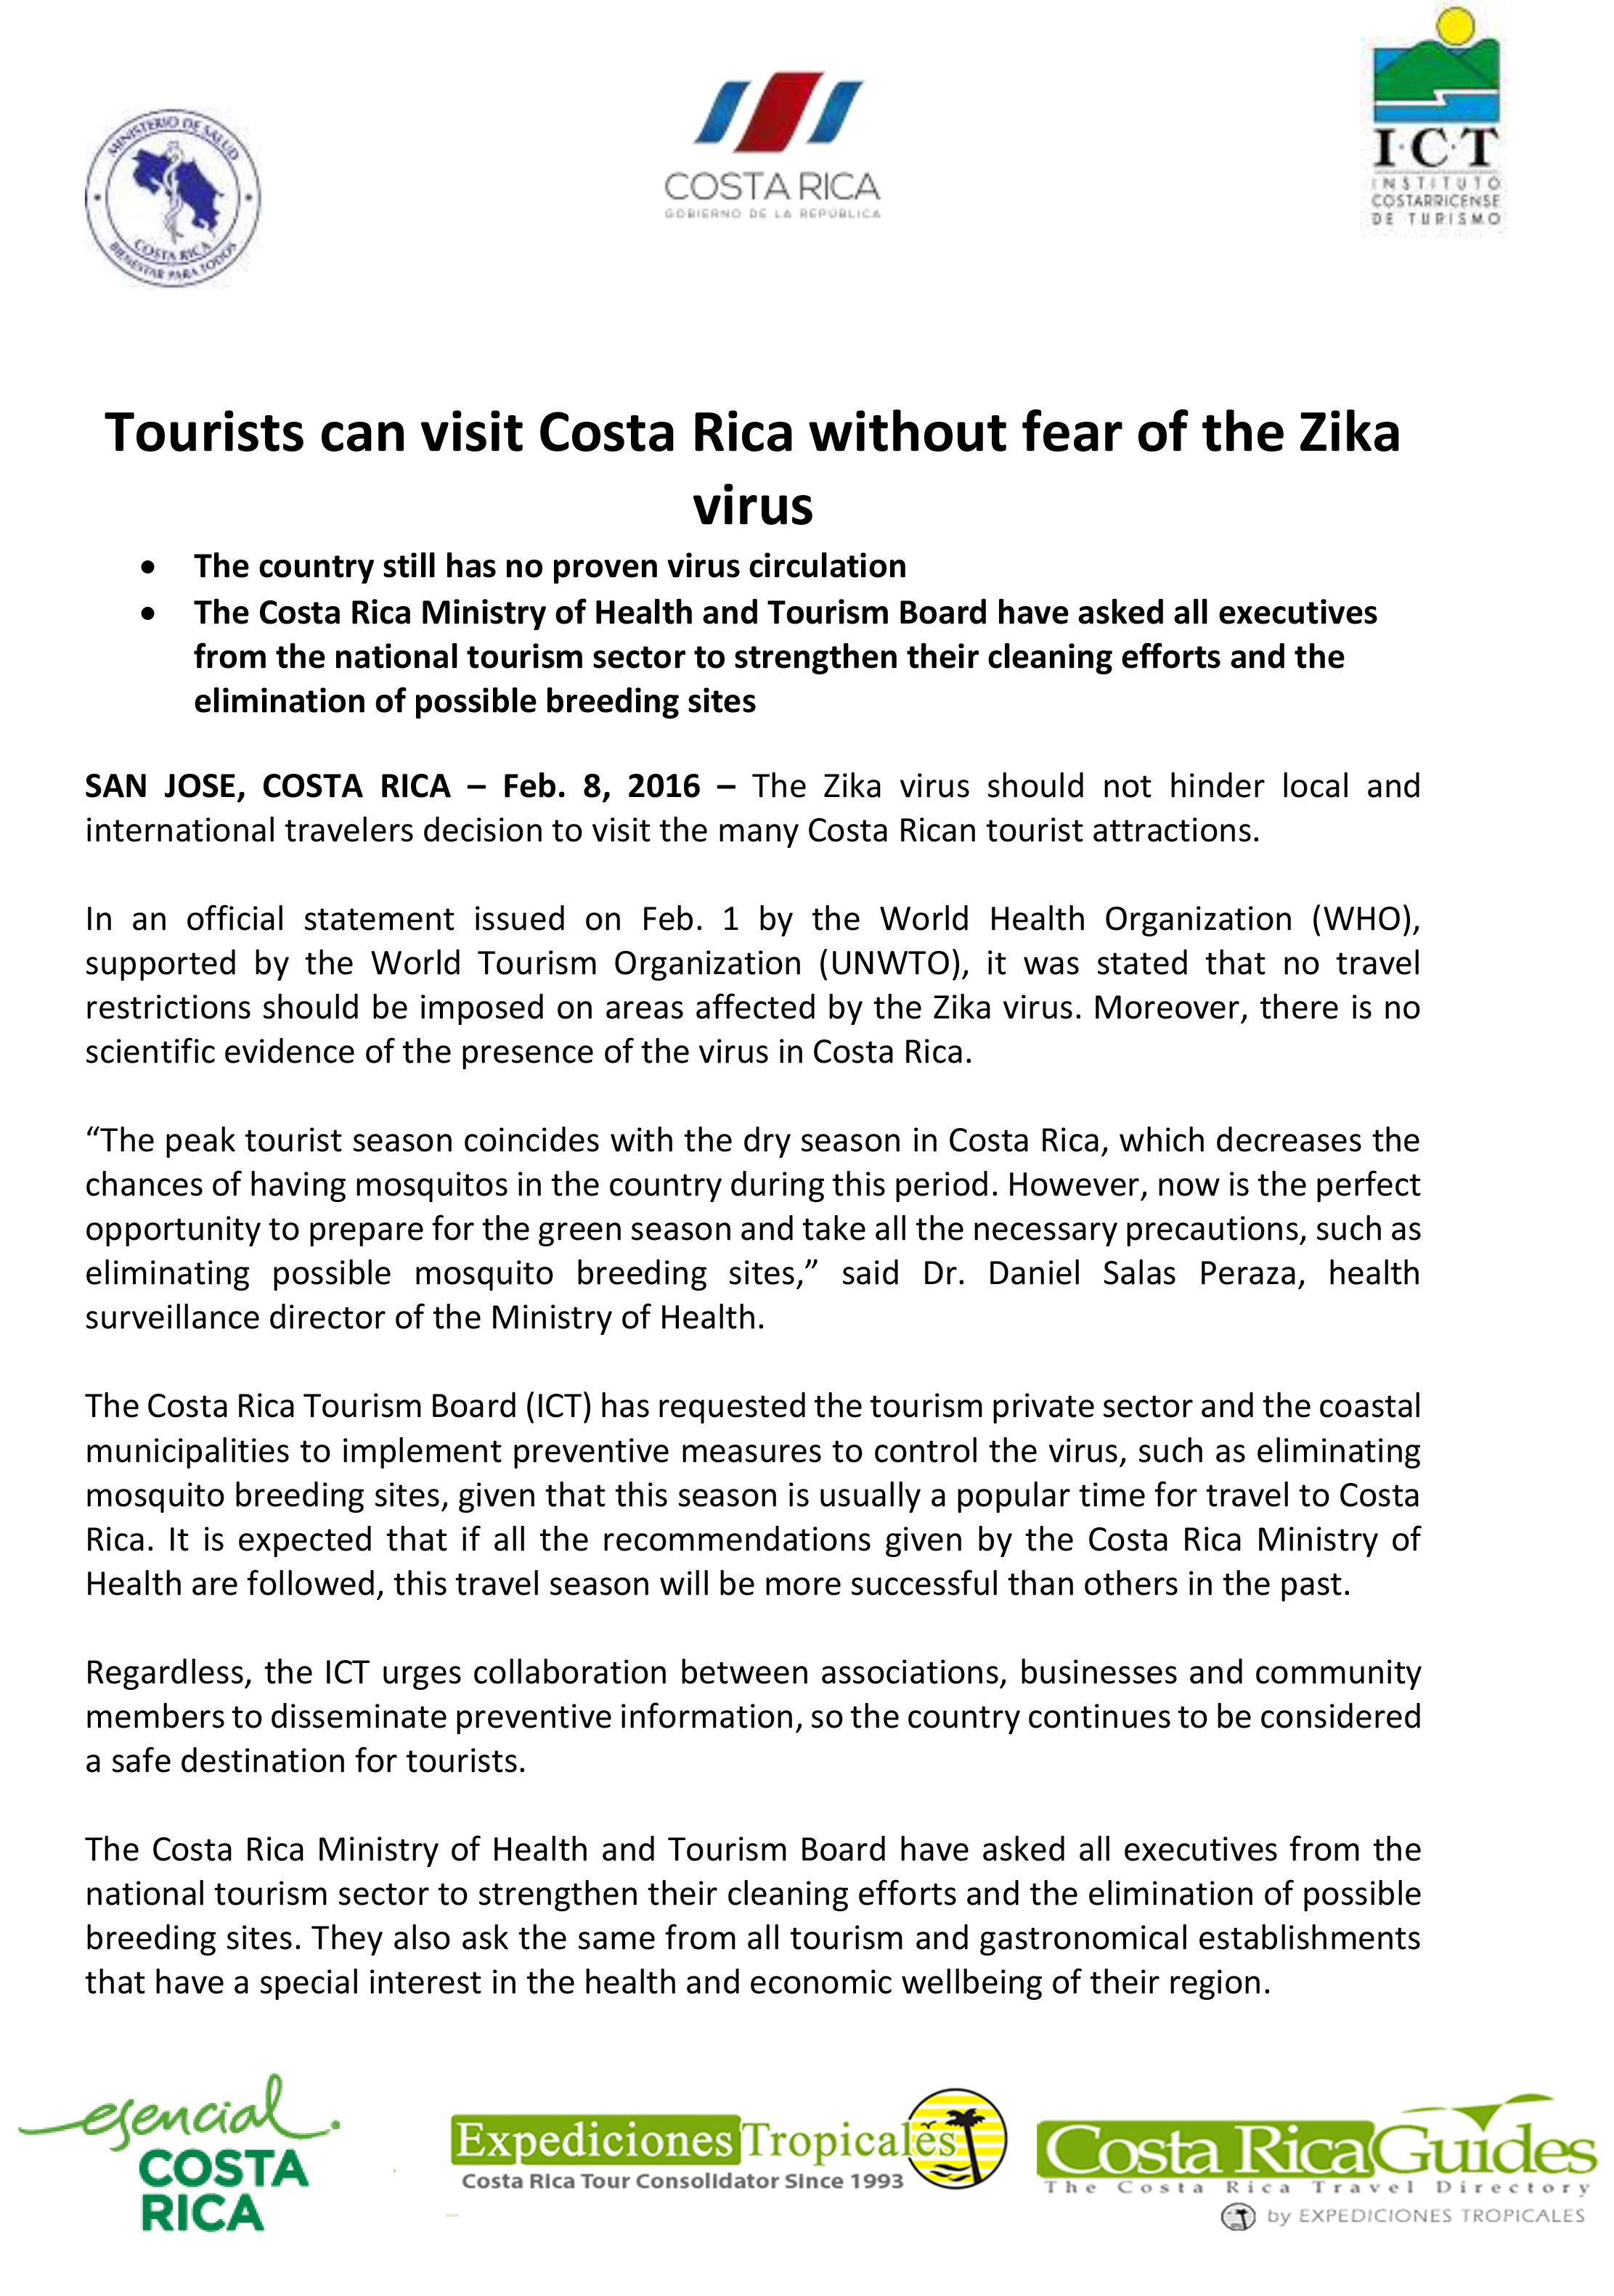 Tourists can visit Costa Rica without fear of the Zica Virus